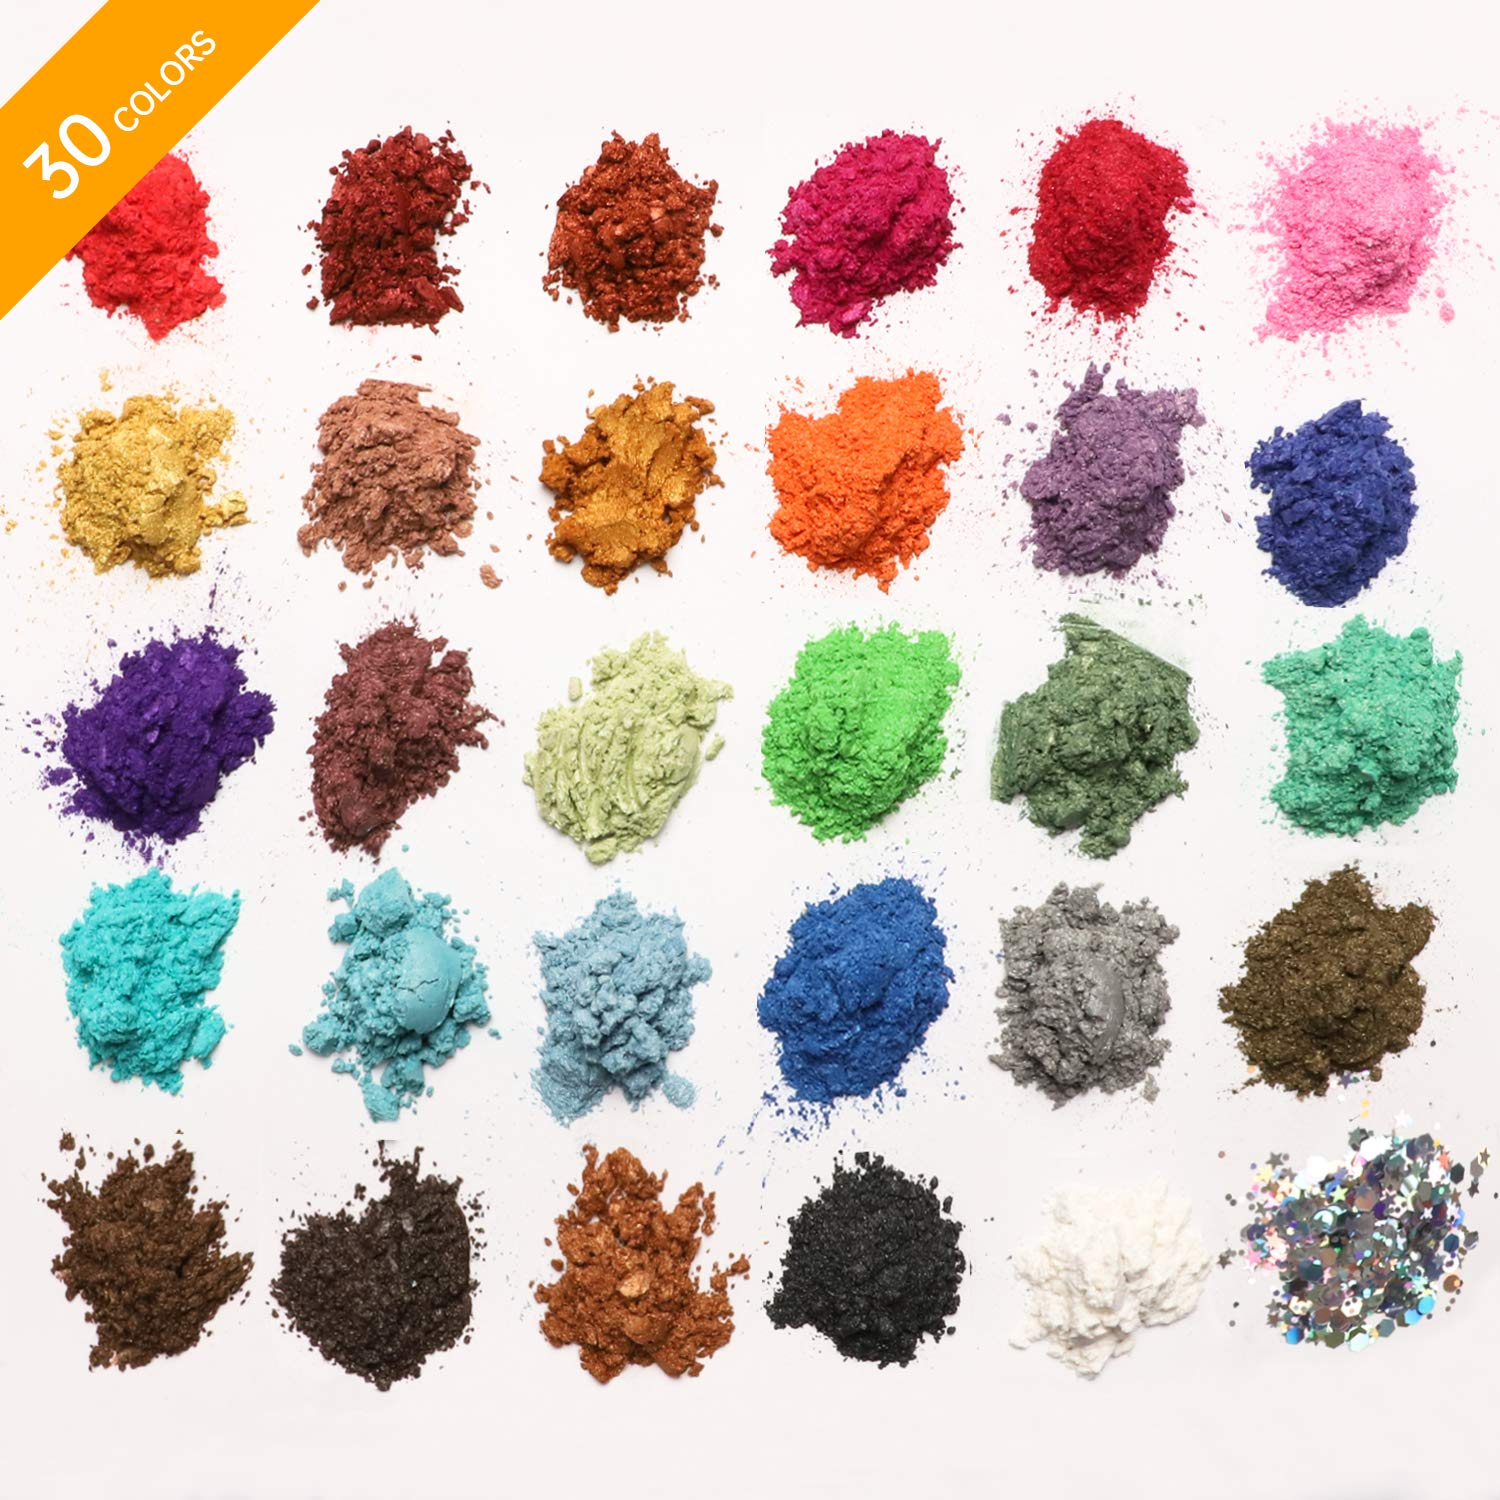 MENNYO Mica Powder 30 Colors (5g/0.18oz, total 150g/5.3oz), Natural Pigments Glitter Epoxy Resin Dye for Soap Making, Bath Bomb, Candle, Cosmetic Eyeshadow, Makeup, Nail Polish, Slime, Paint